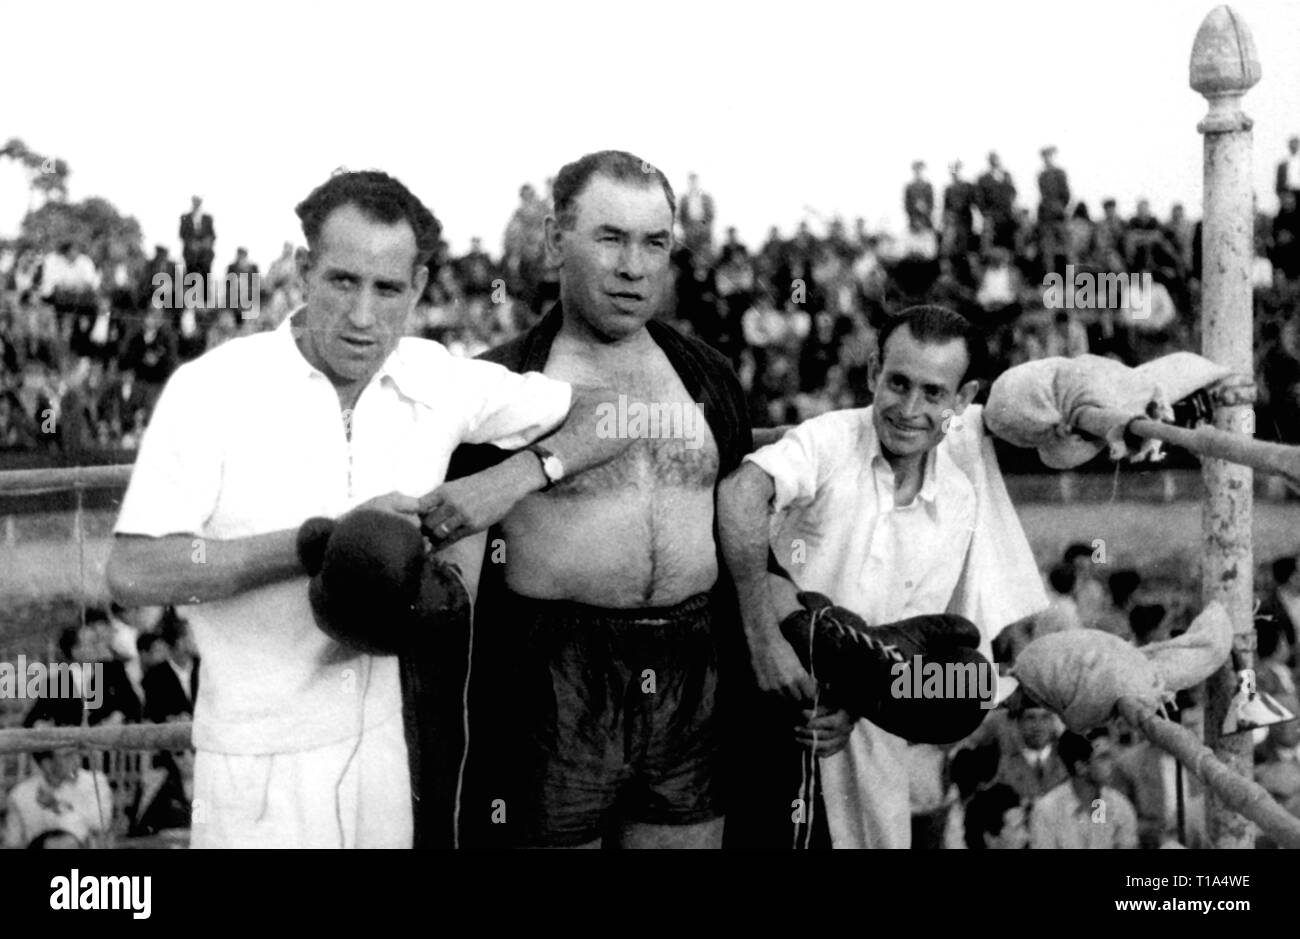 sports, boxing, boxing match Paulino Uzcudun against Rodolfo Diaz, shortly before the fight, Uzcudun gets the gloves tied up, San Lorenzo de El Escorial, Spain, 1.9.1946, Additional-Rights-Clearance-Info-Not-Available - Stock Image